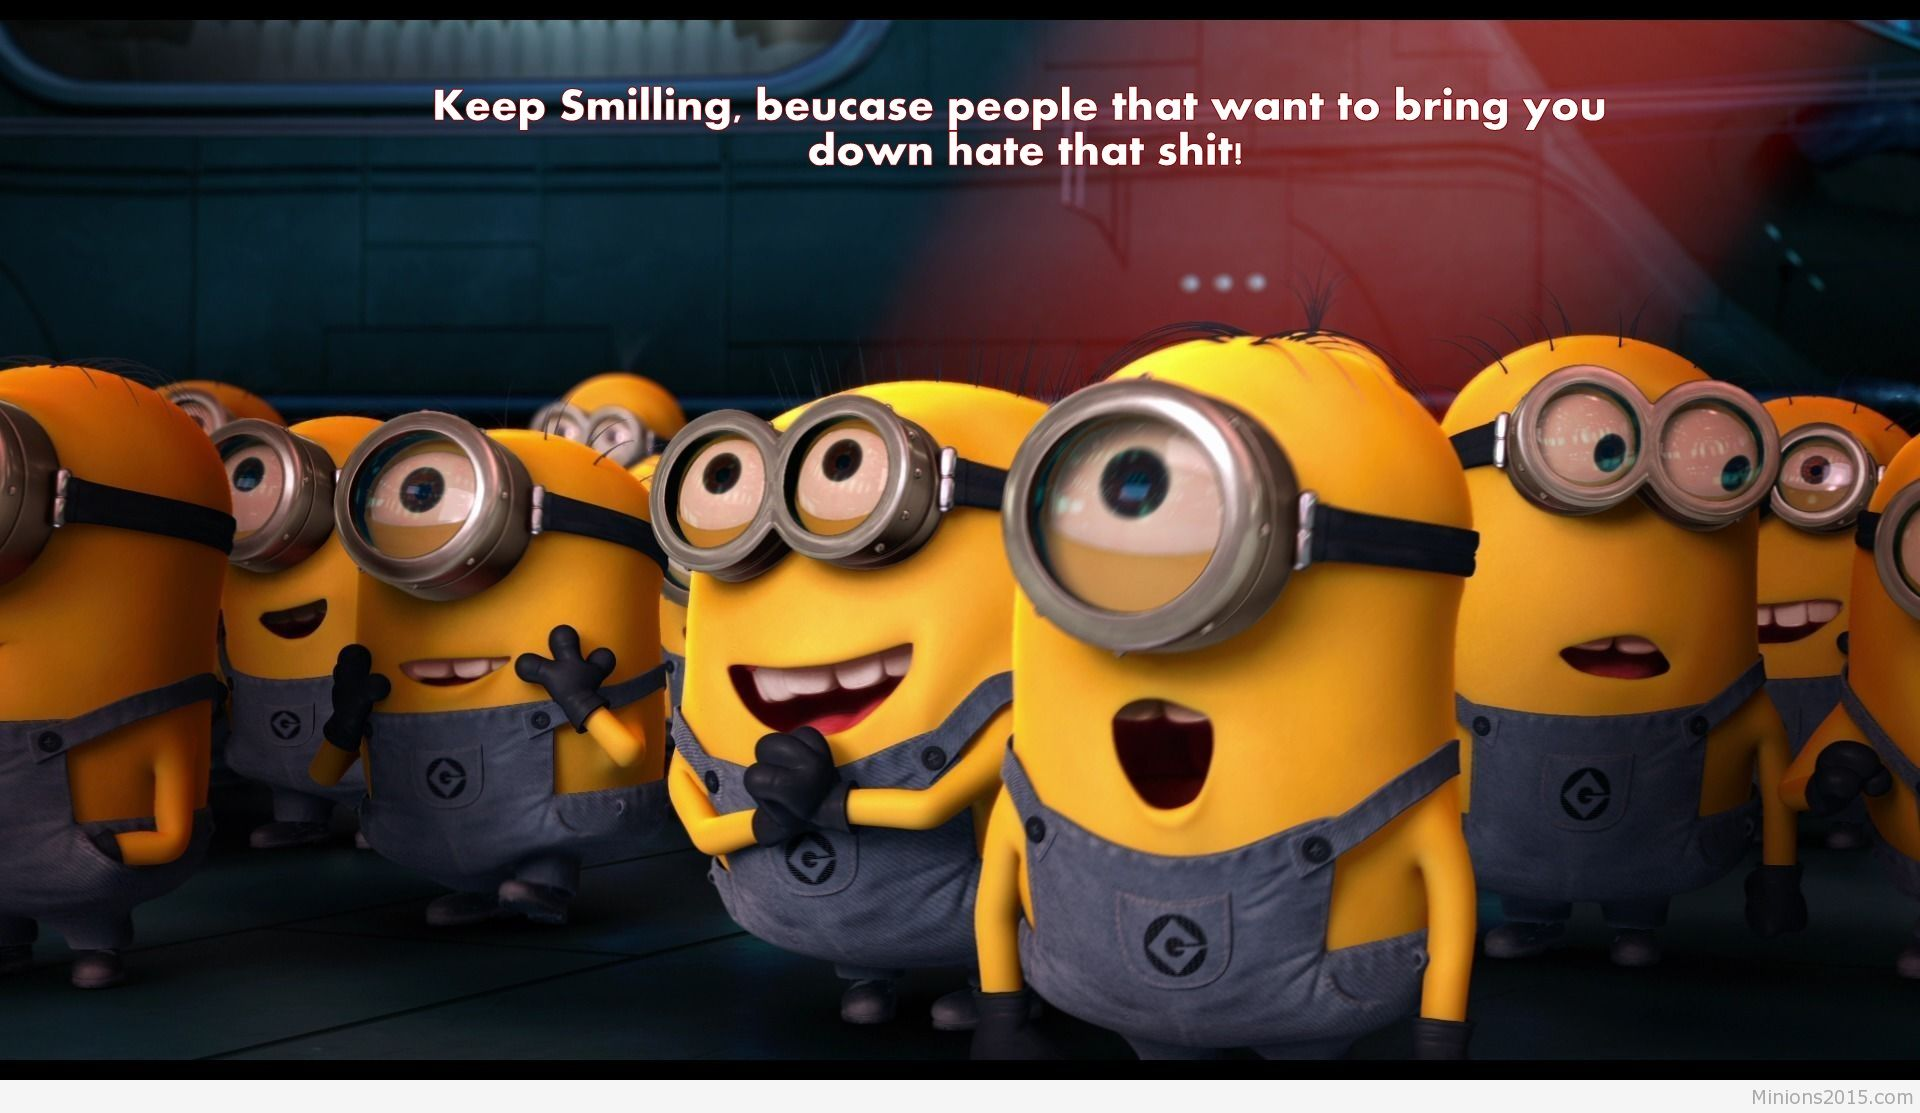 Download-HD-funny-minions-wallpaper-wpc9004418